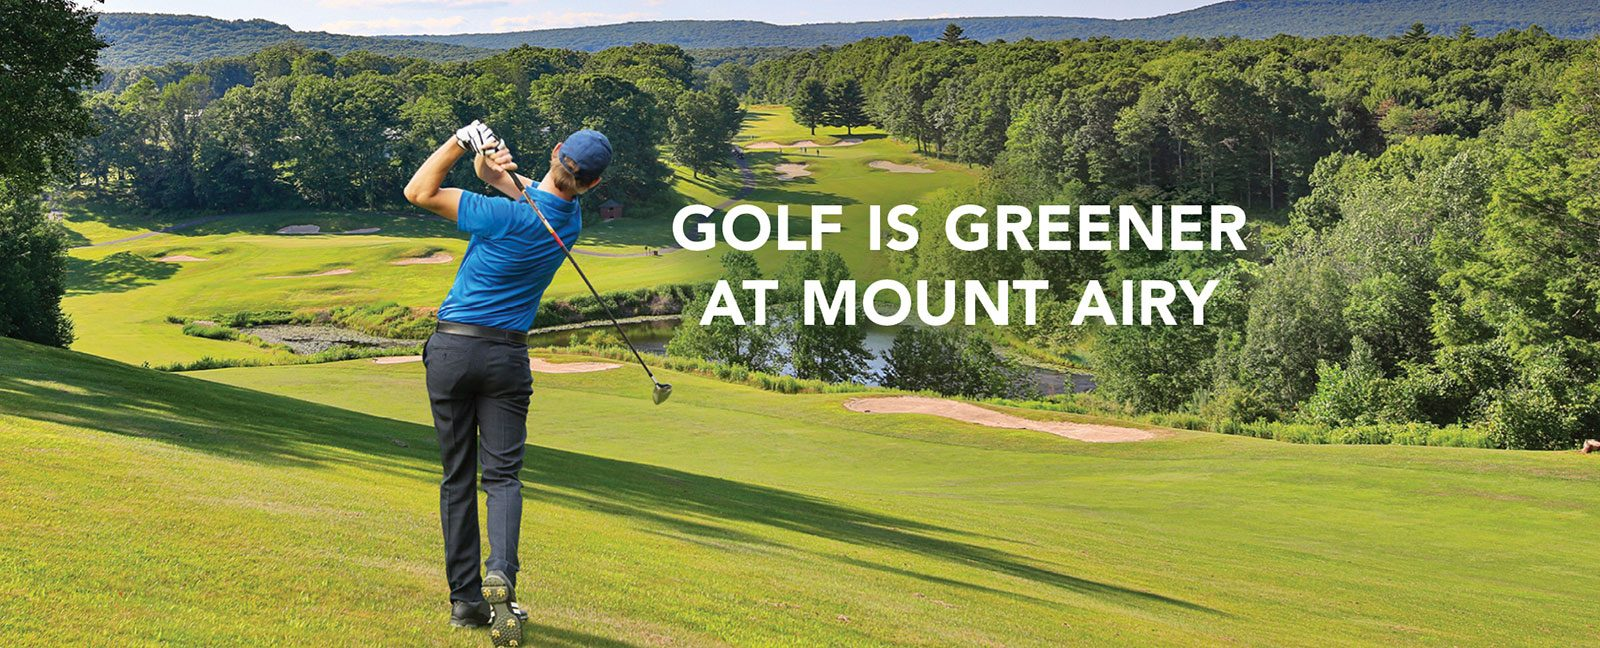 golf is greener at mount airy